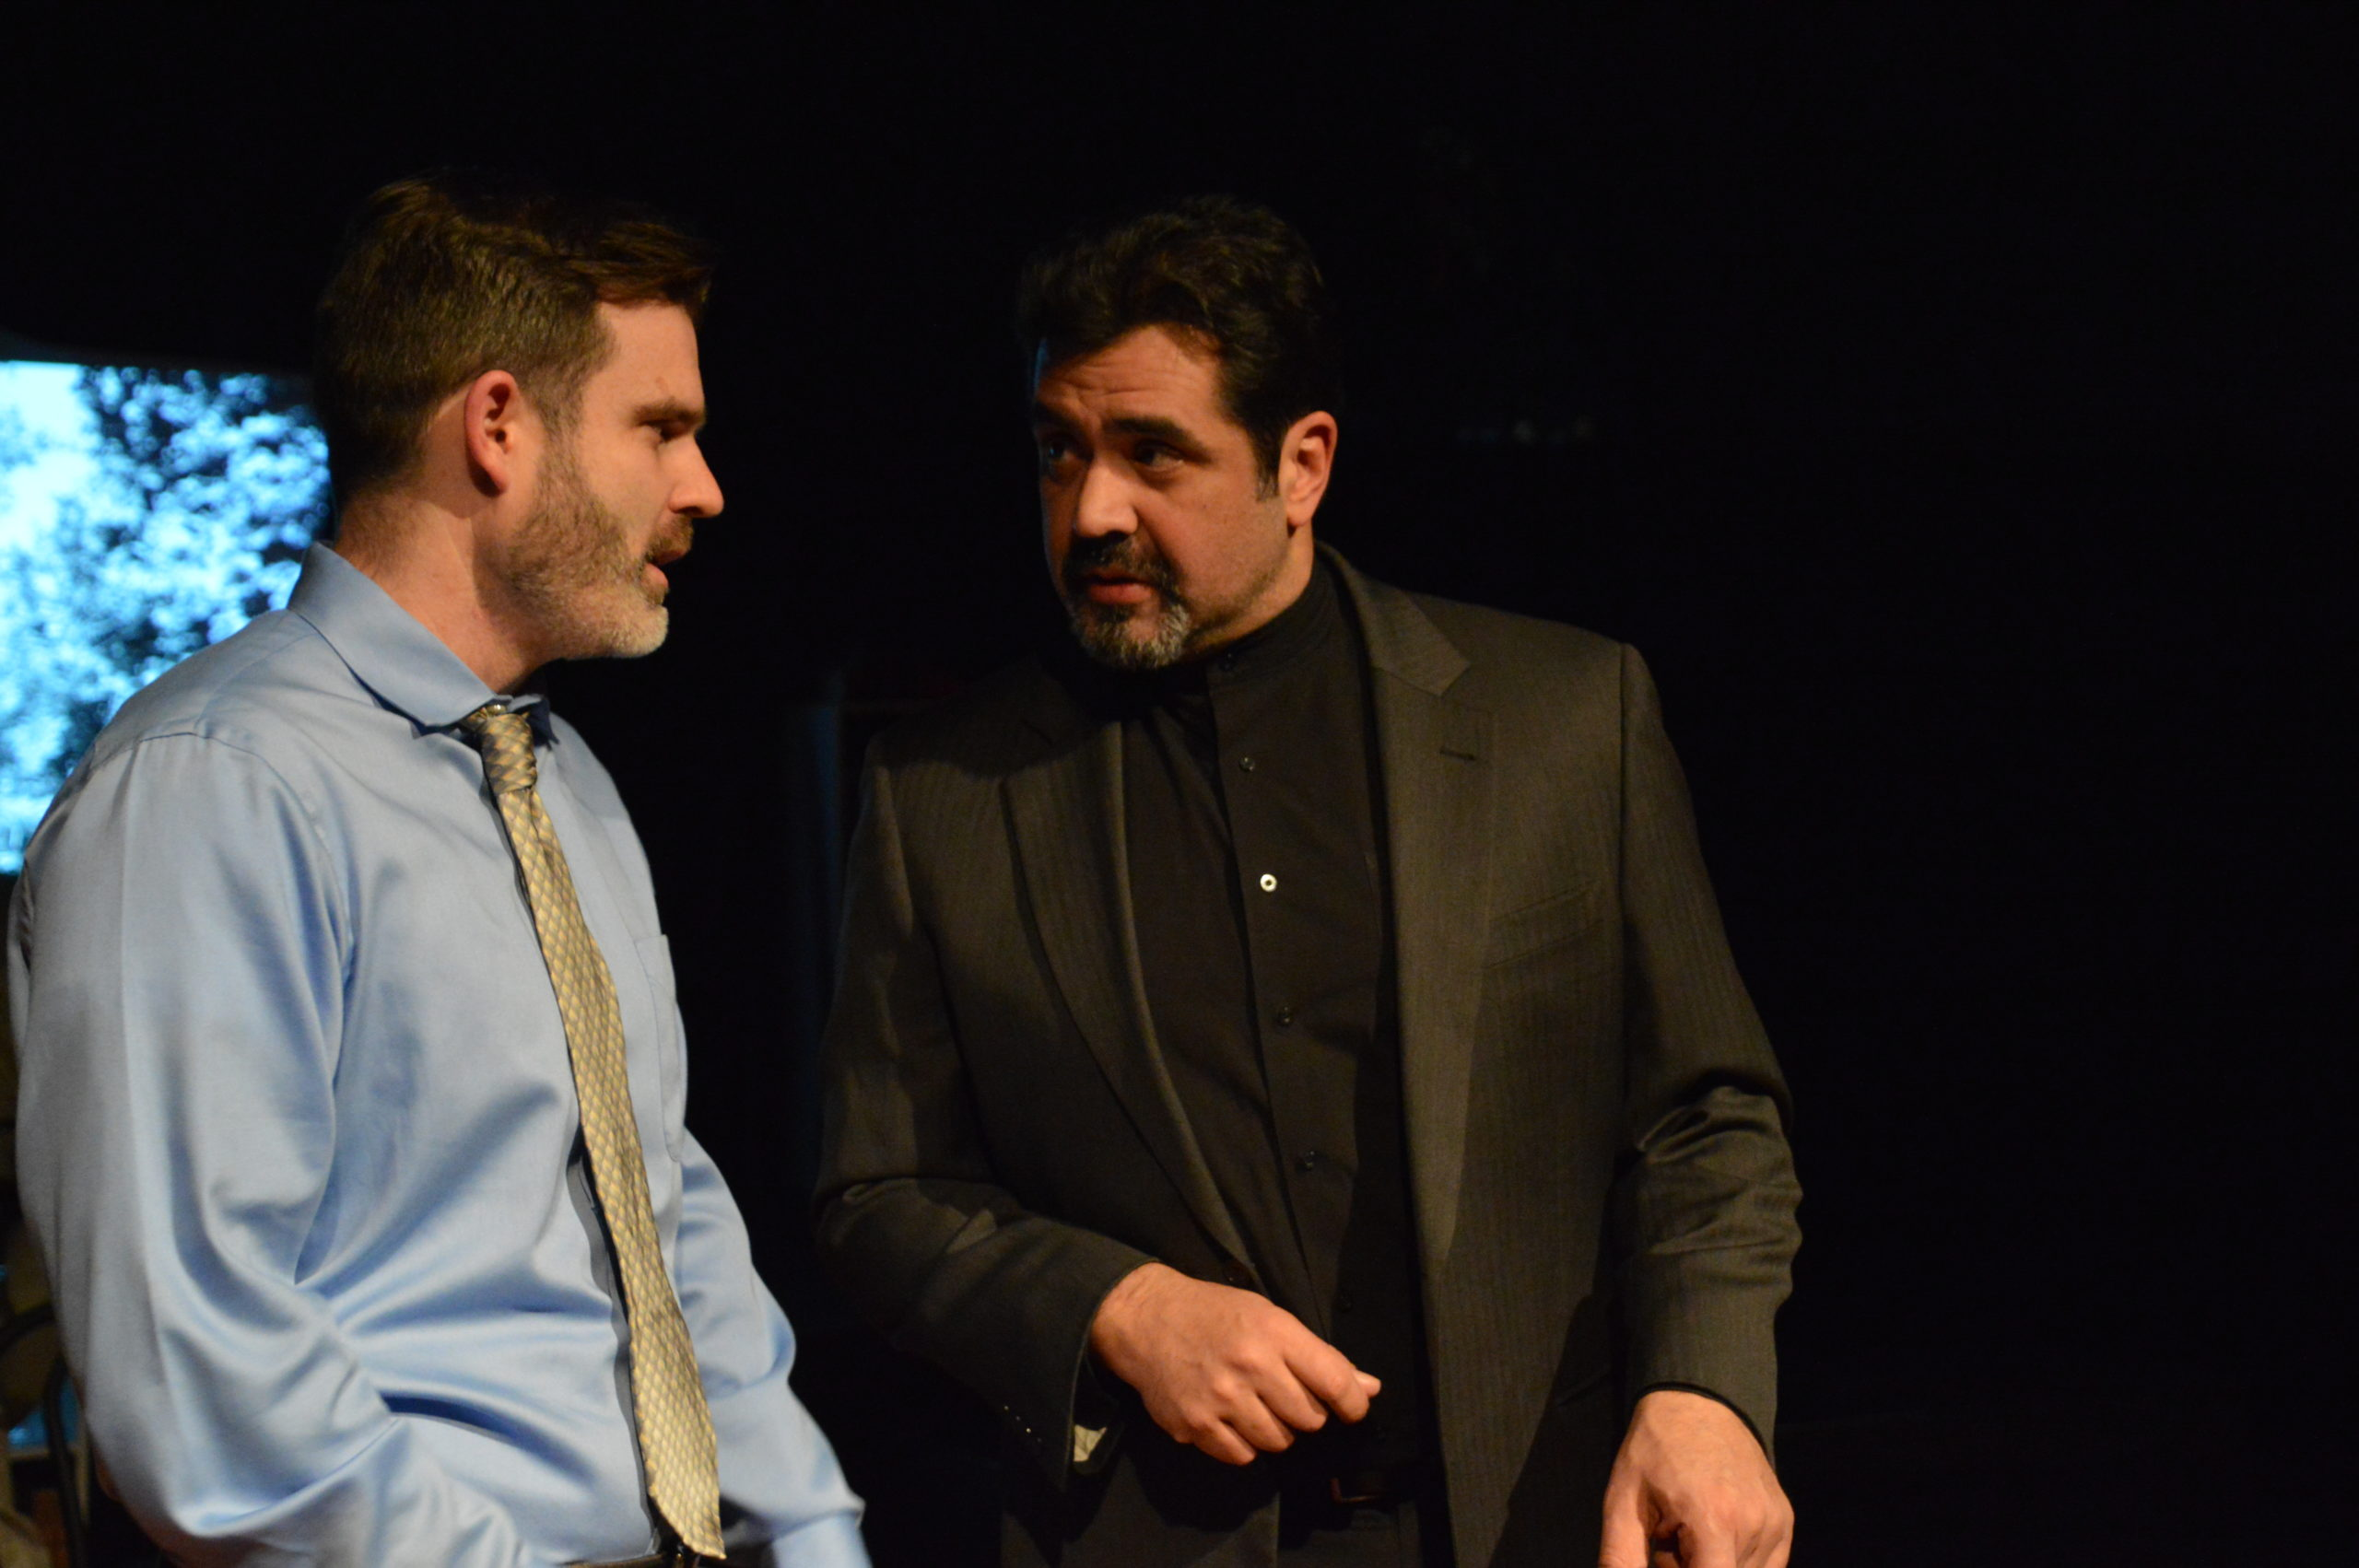 Casey Ewell and Ernie Molina in 'Book of Days' by St. Mark's Players. Photo by Oscar Alvarez.